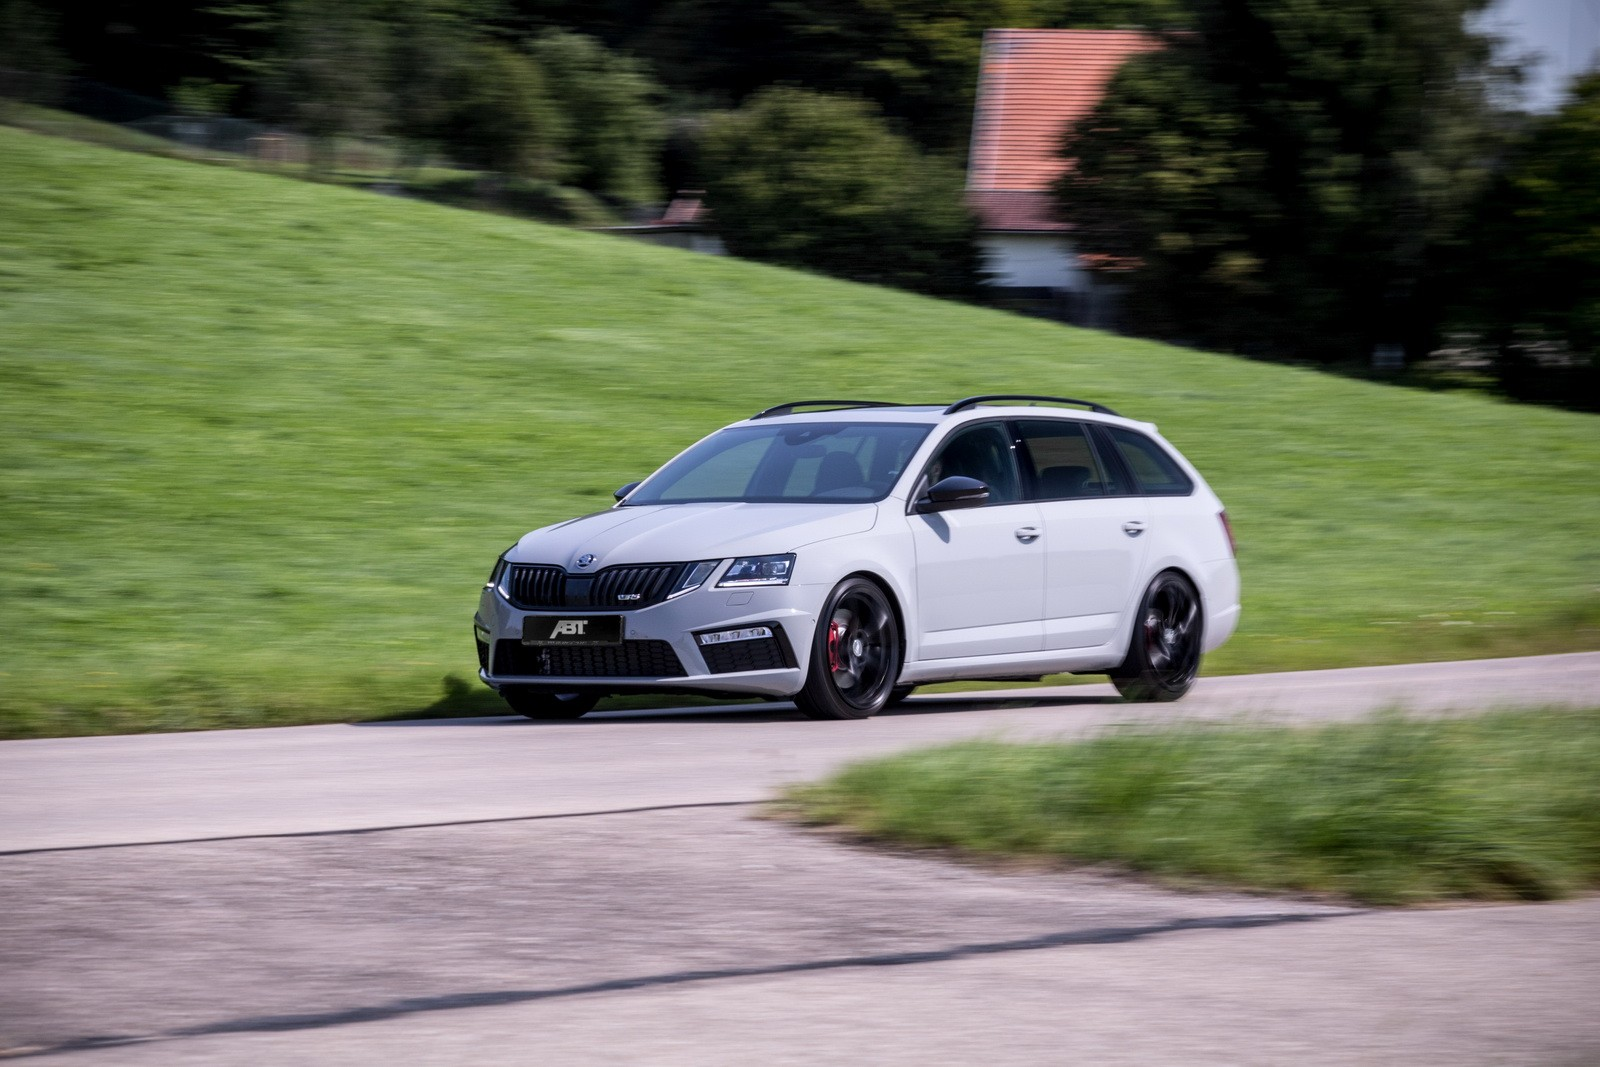 updated skoda octavia rs makes 315 hp thanks to abt tuning. Black Bedroom Furniture Sets. Home Design Ideas